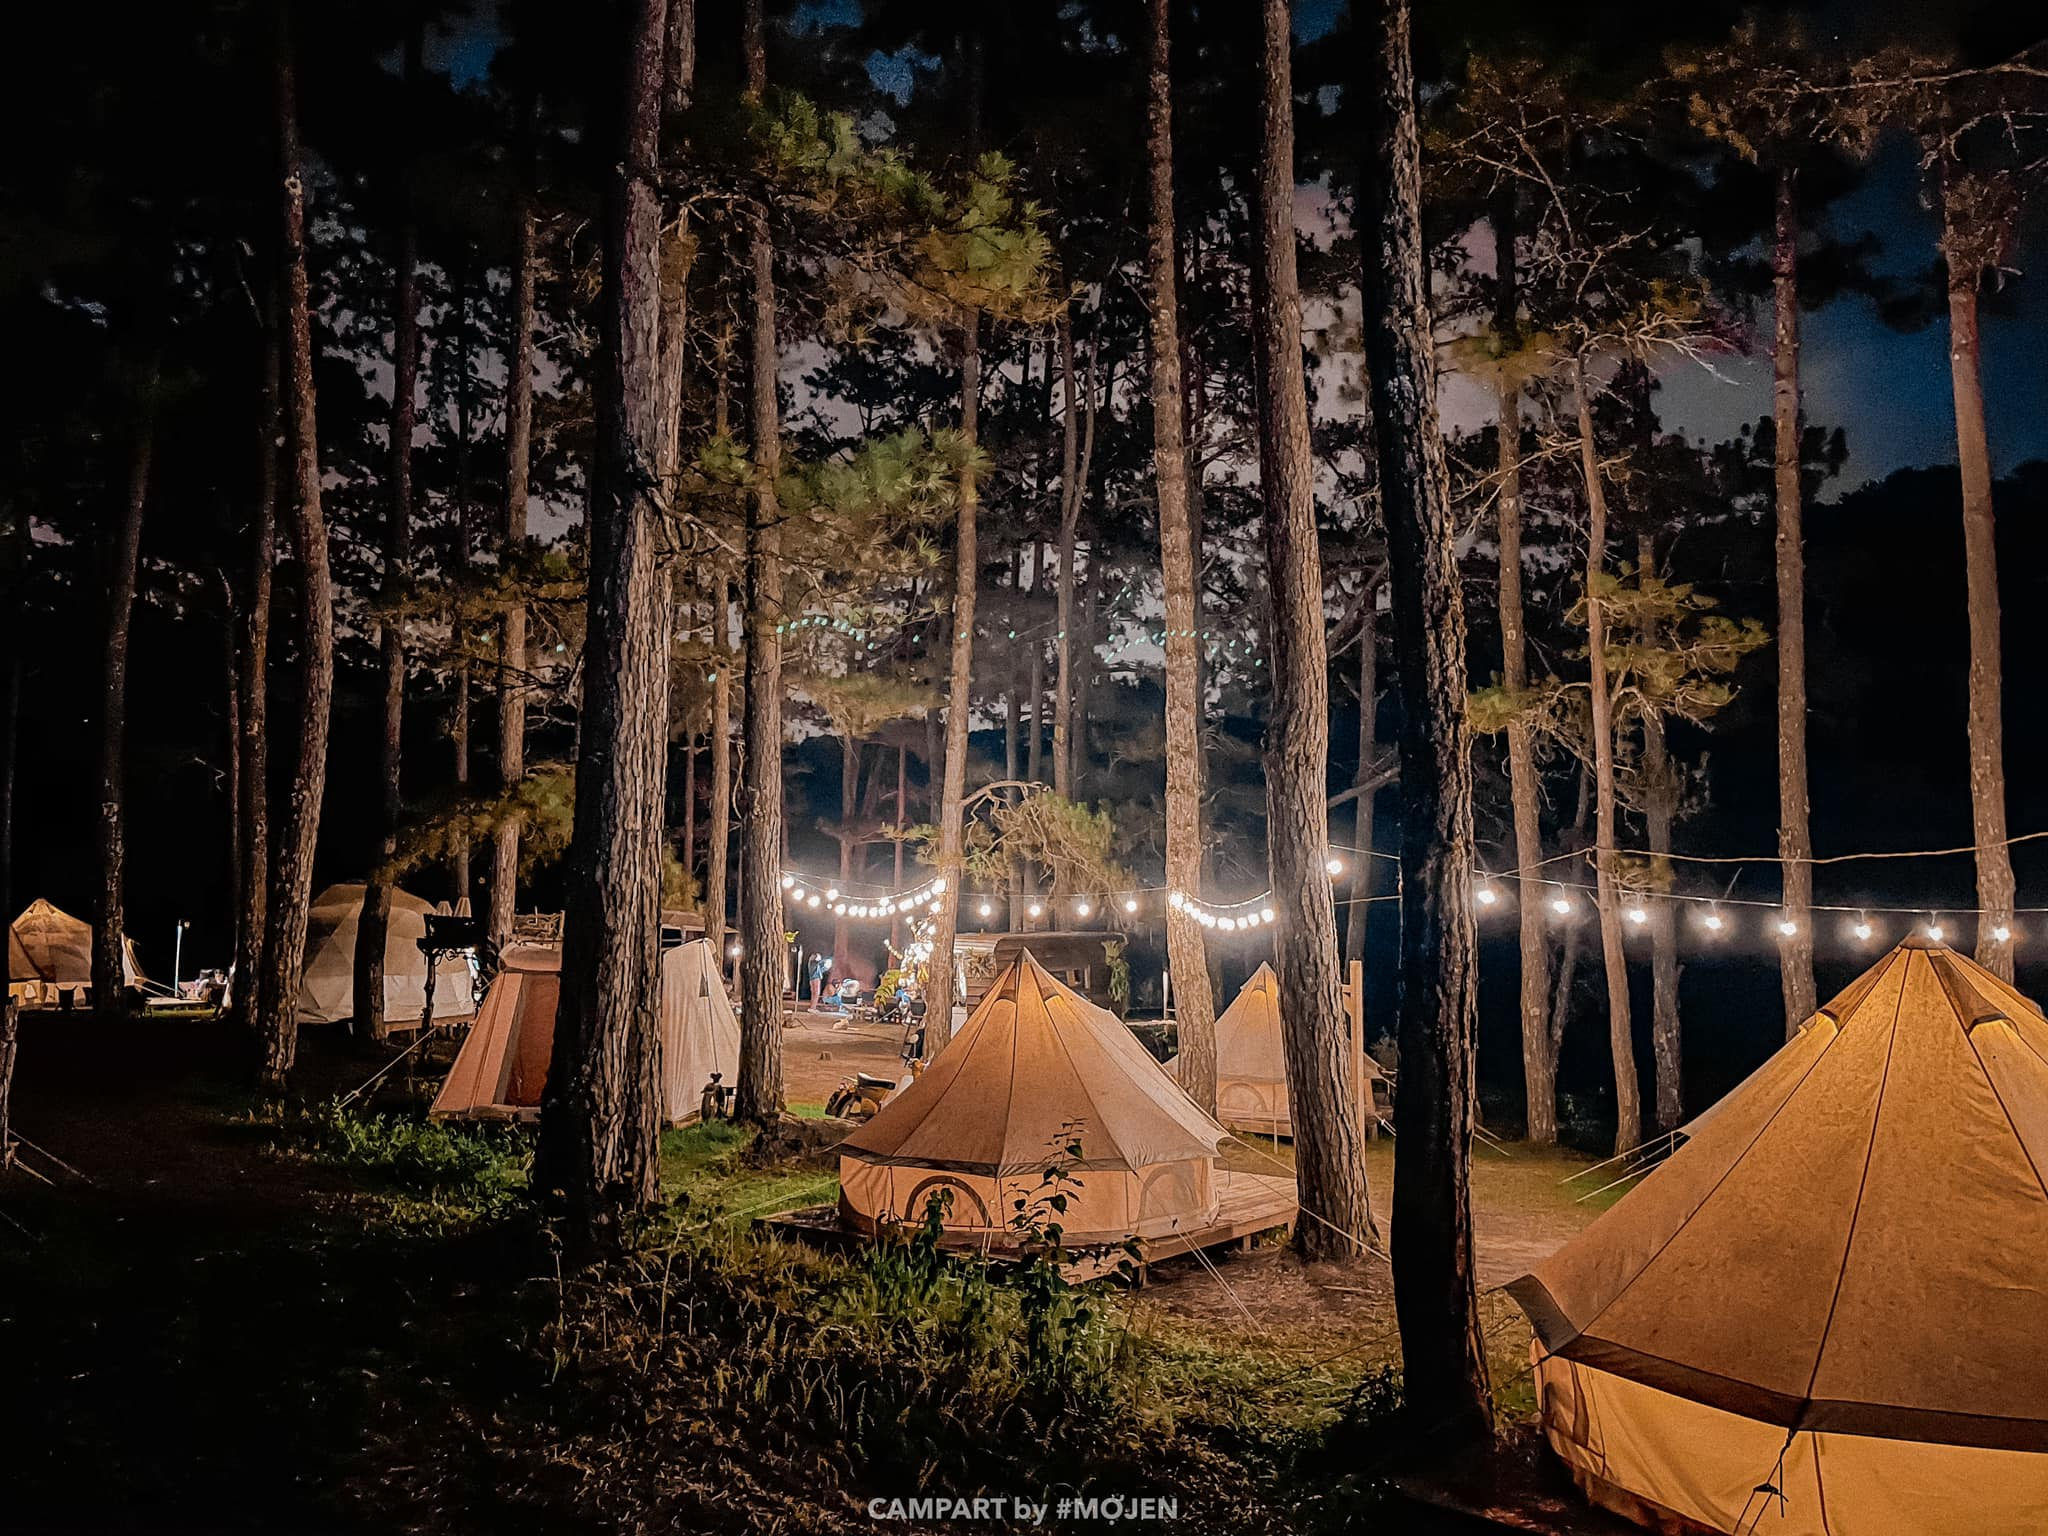 Tents are surrounded inside the pine forest in the Golden Valley in Da Lat. Photo courtesy of CampArt.